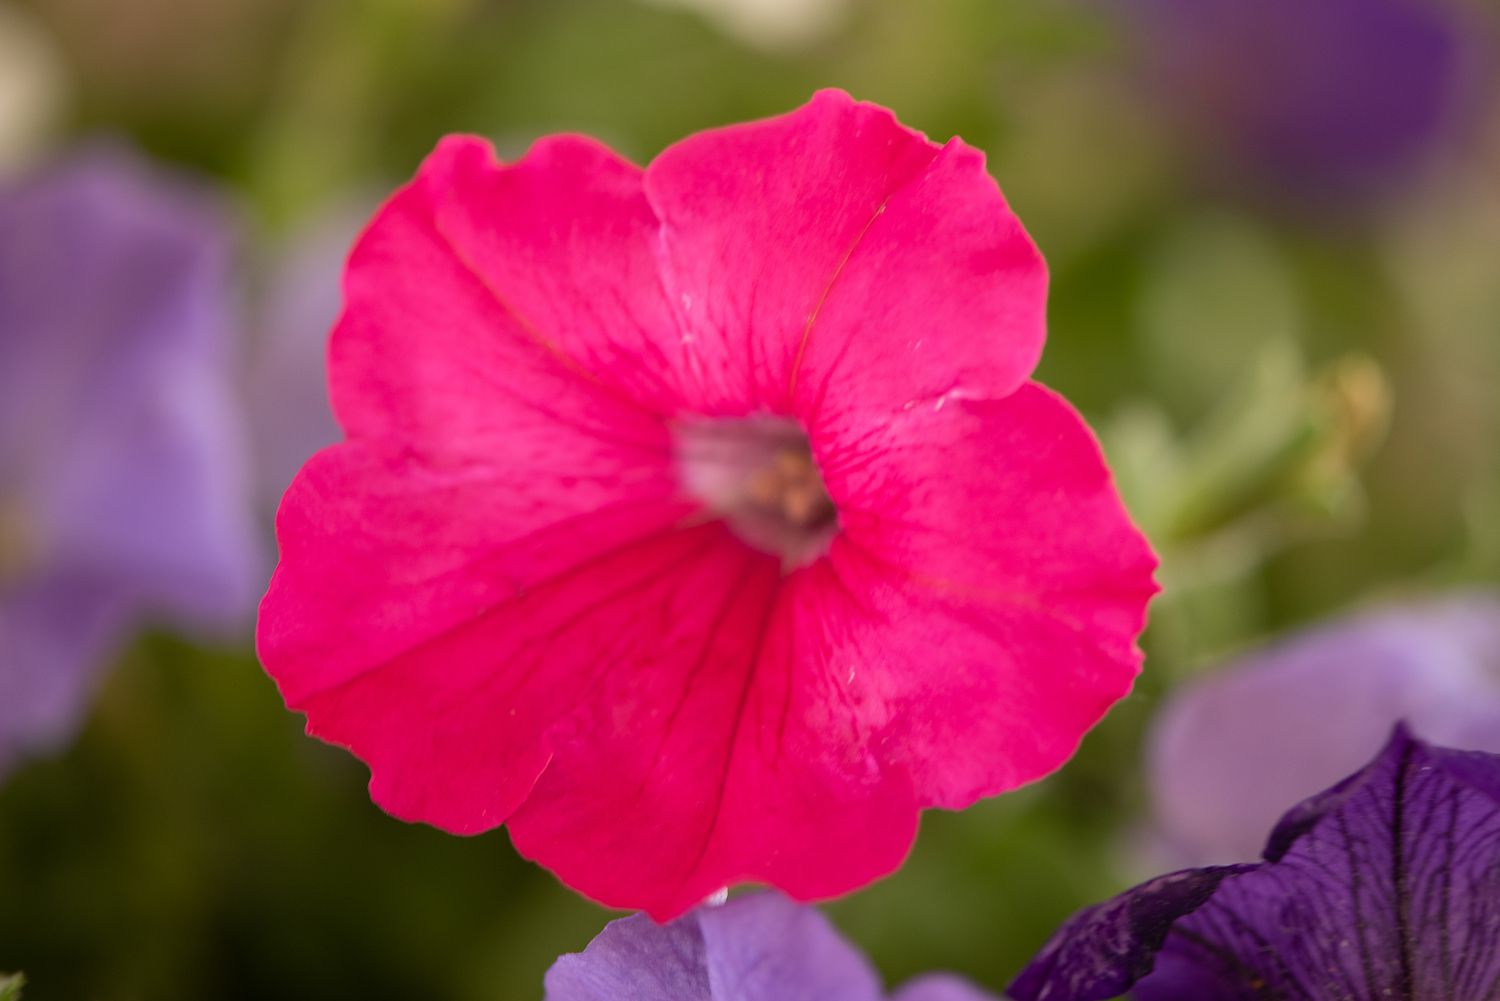 How To Grow And Care For Petunia Plants